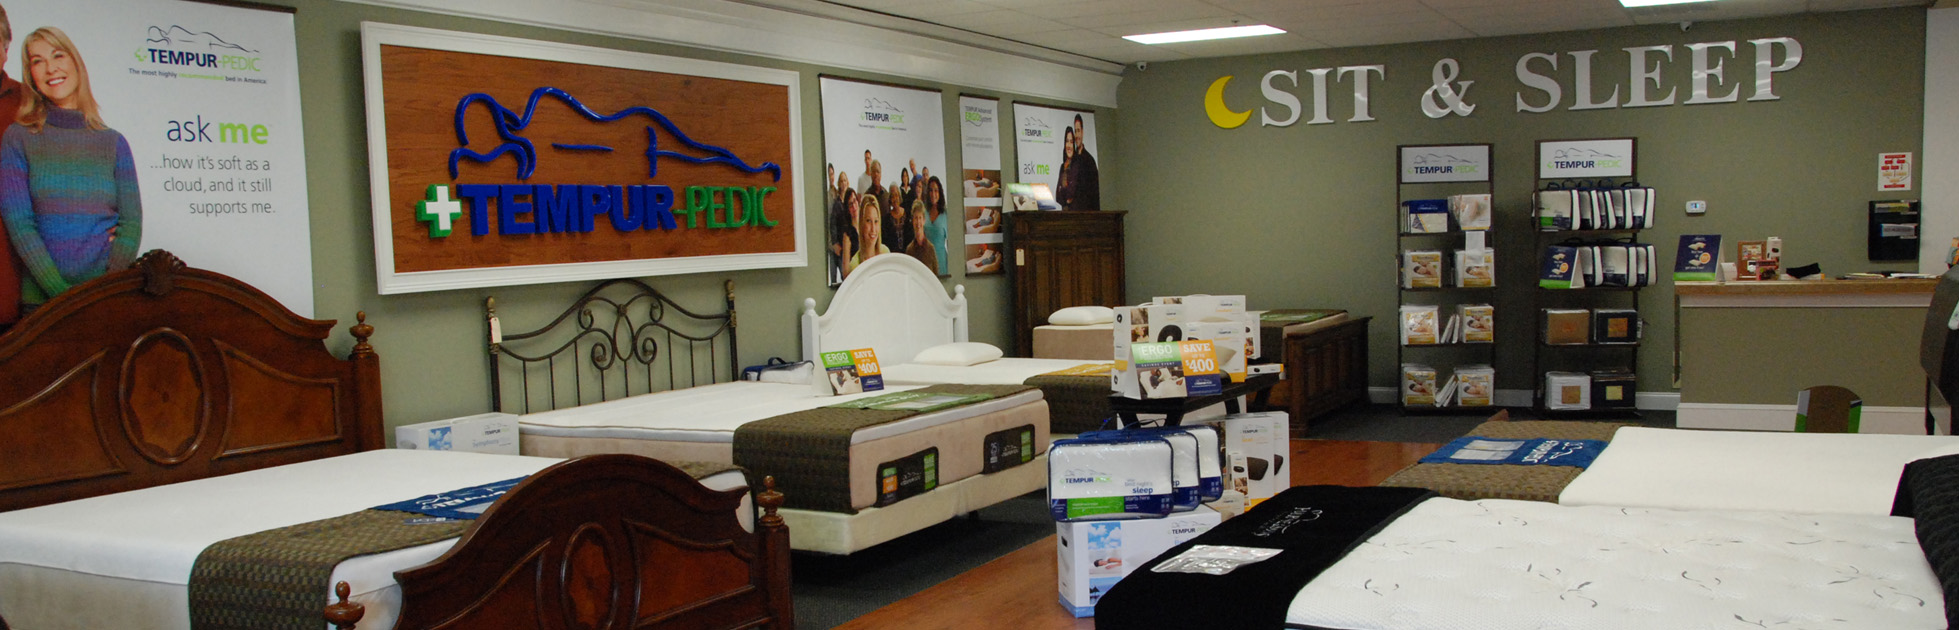 Sit Amp Sleep The Best Mattresses In Savannah Amp Pooler